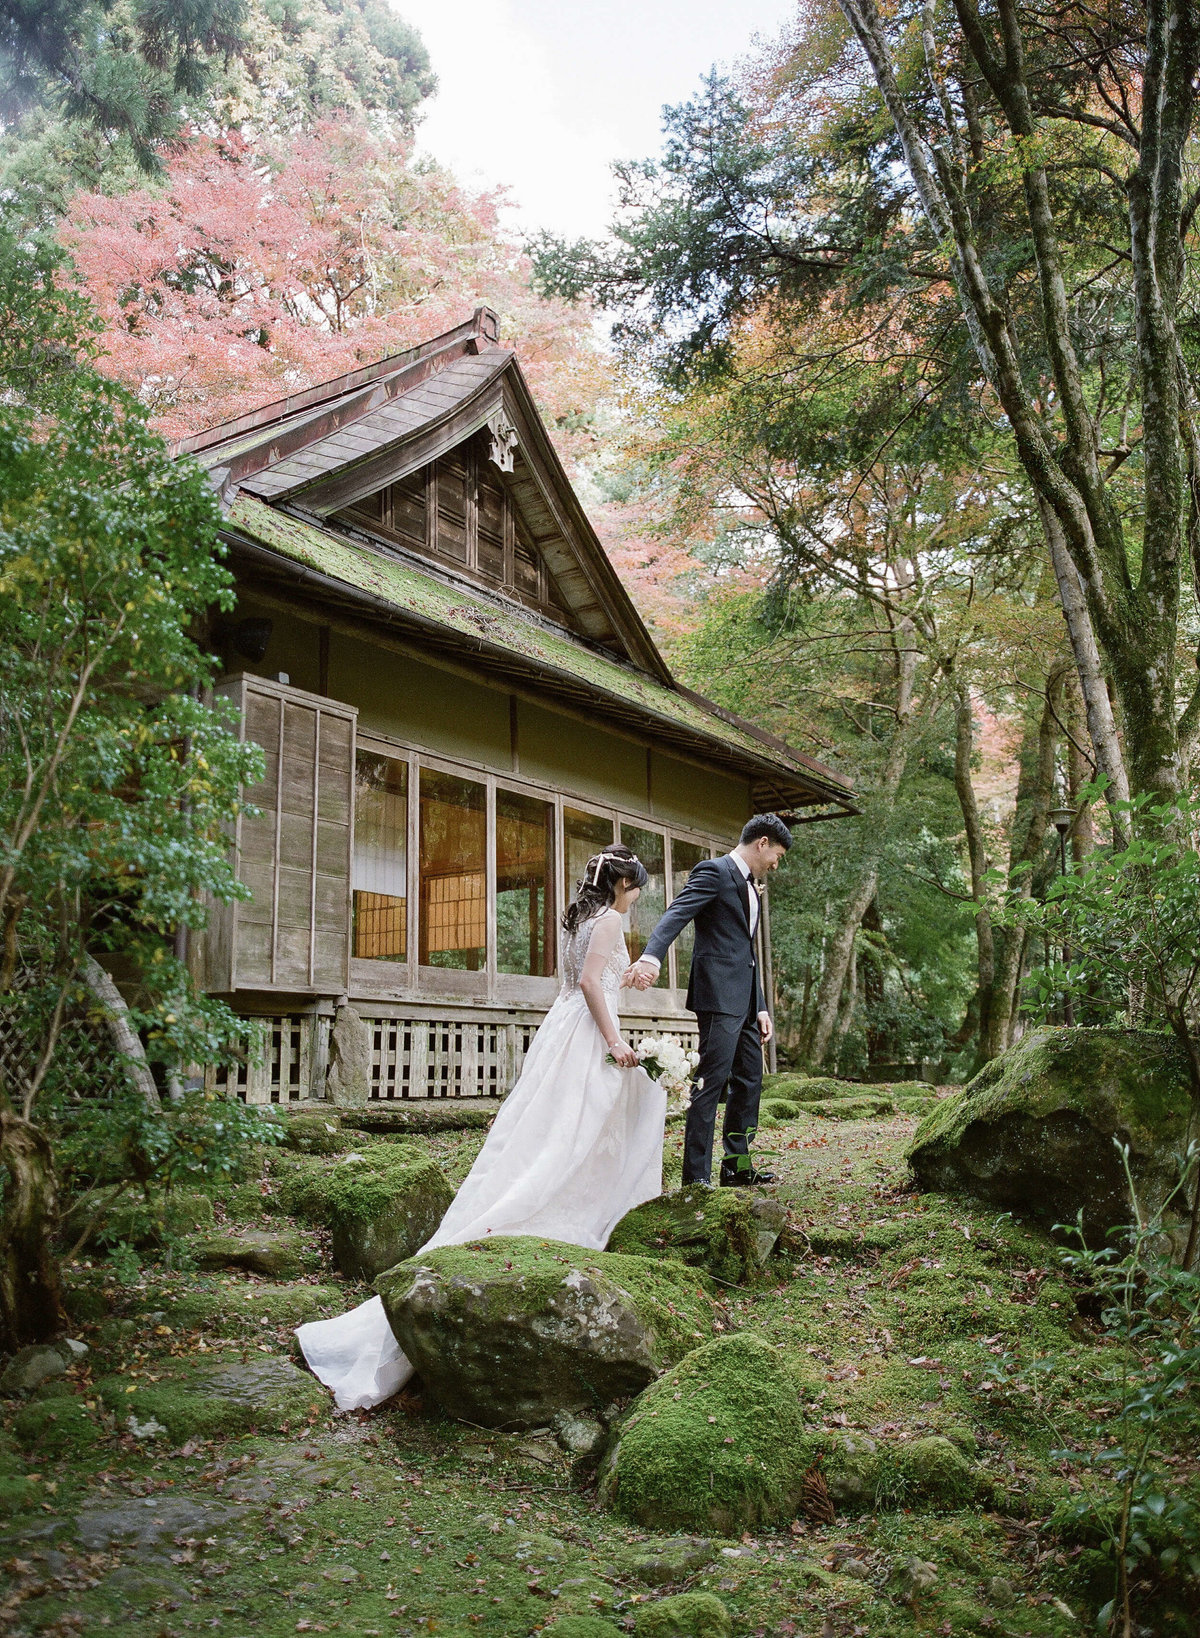 14-KTMerry-weddings-bride-groom- japan